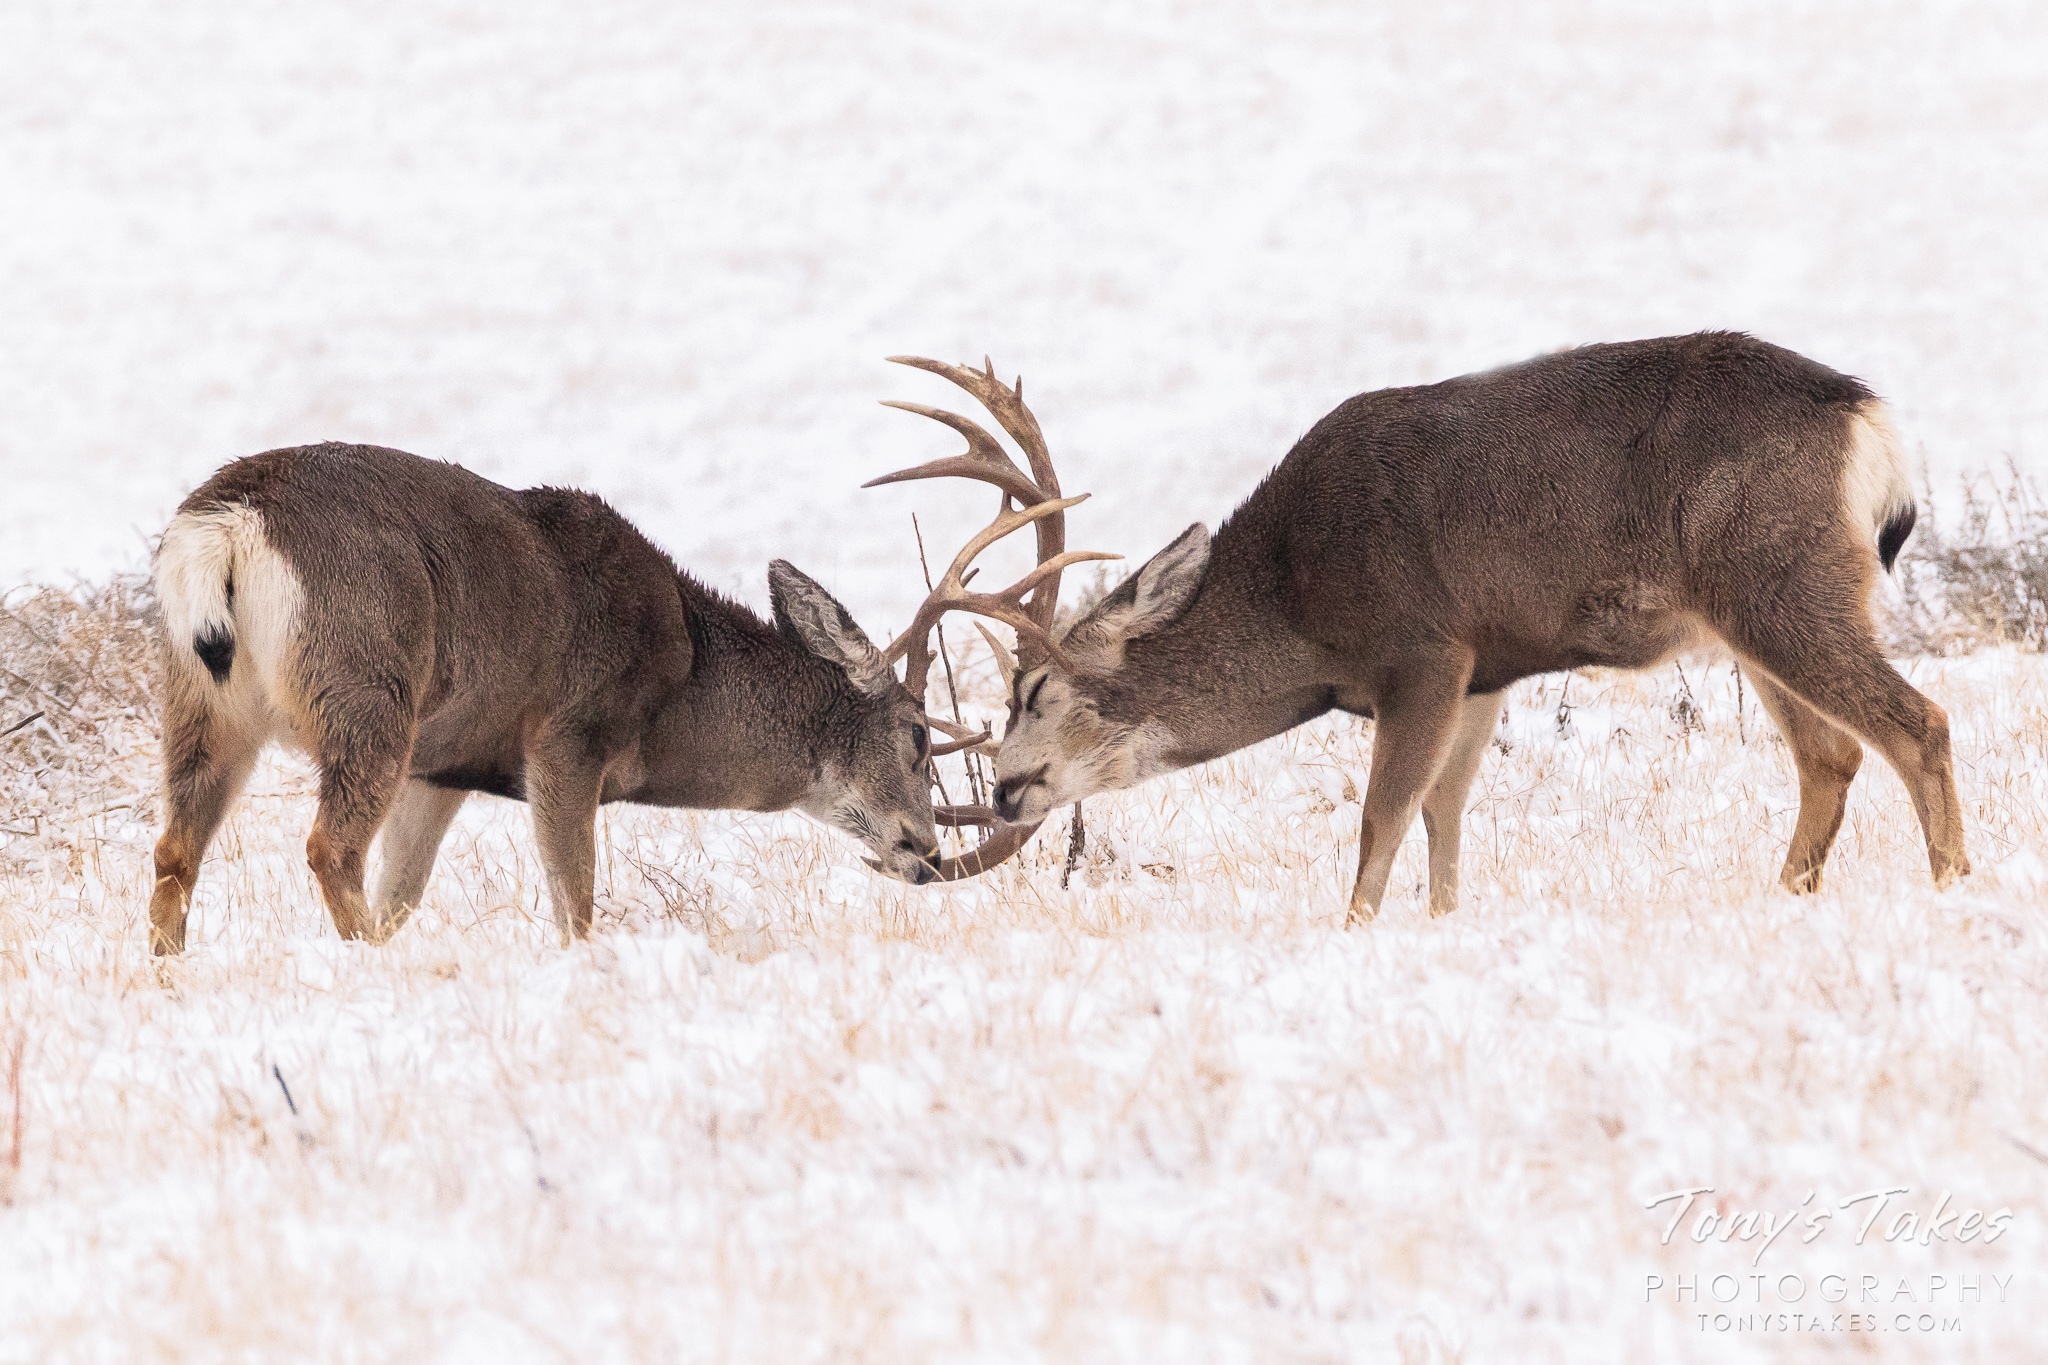 Mule deer bucks spar in the snow at the Rocky Mountain Arsenal National Wildlife Refuge. (© Tony's Takes)